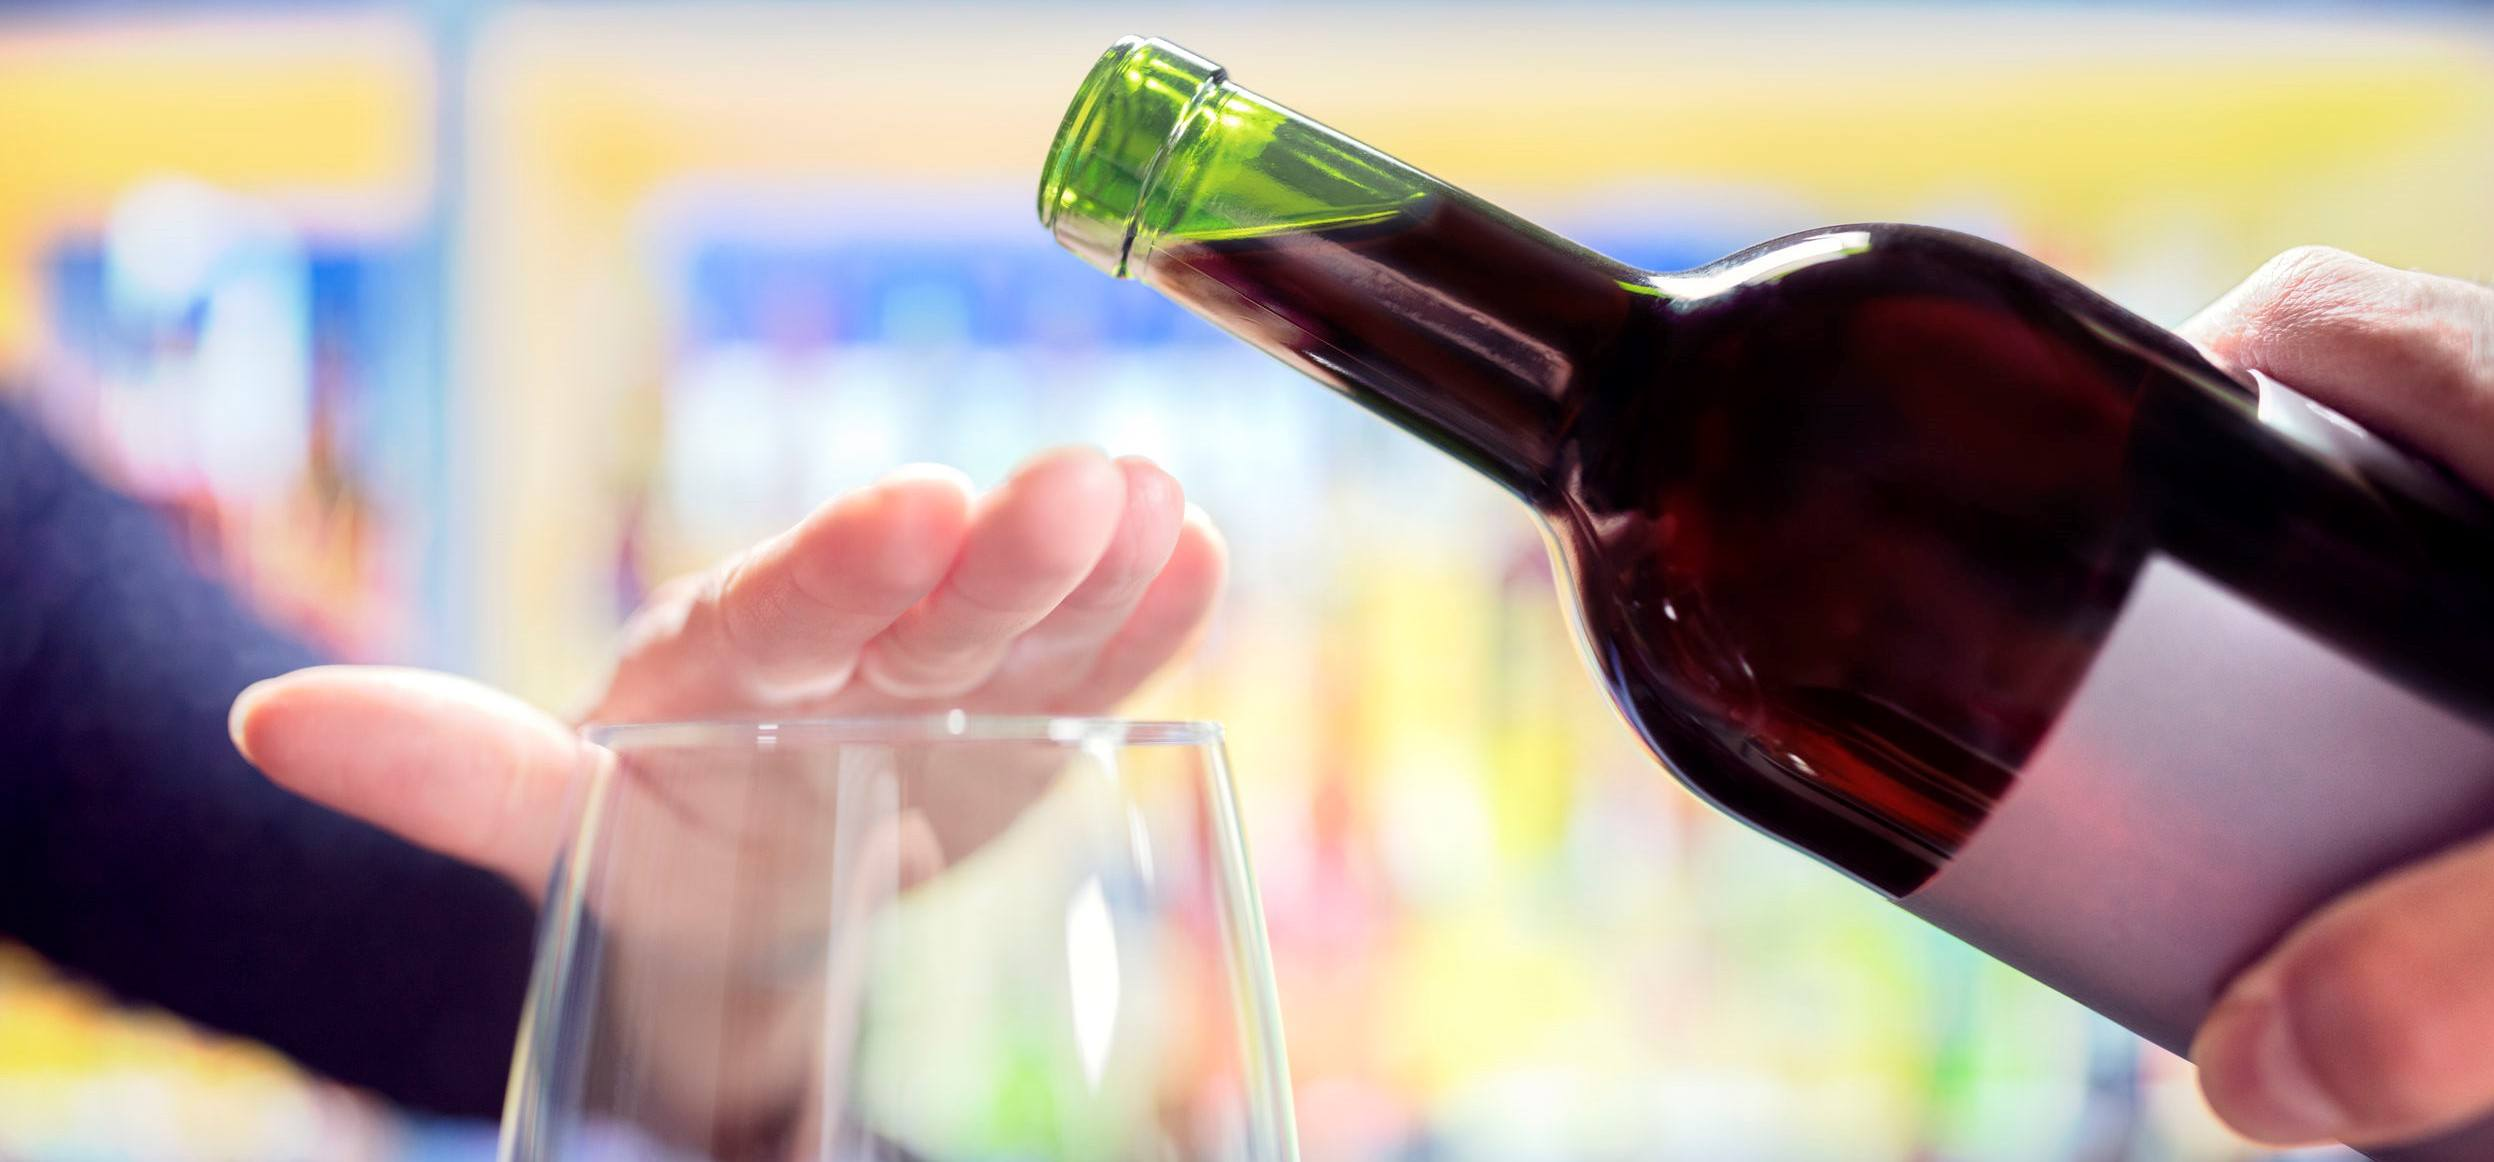 A person putting their hand over a glass, stopping a pour.